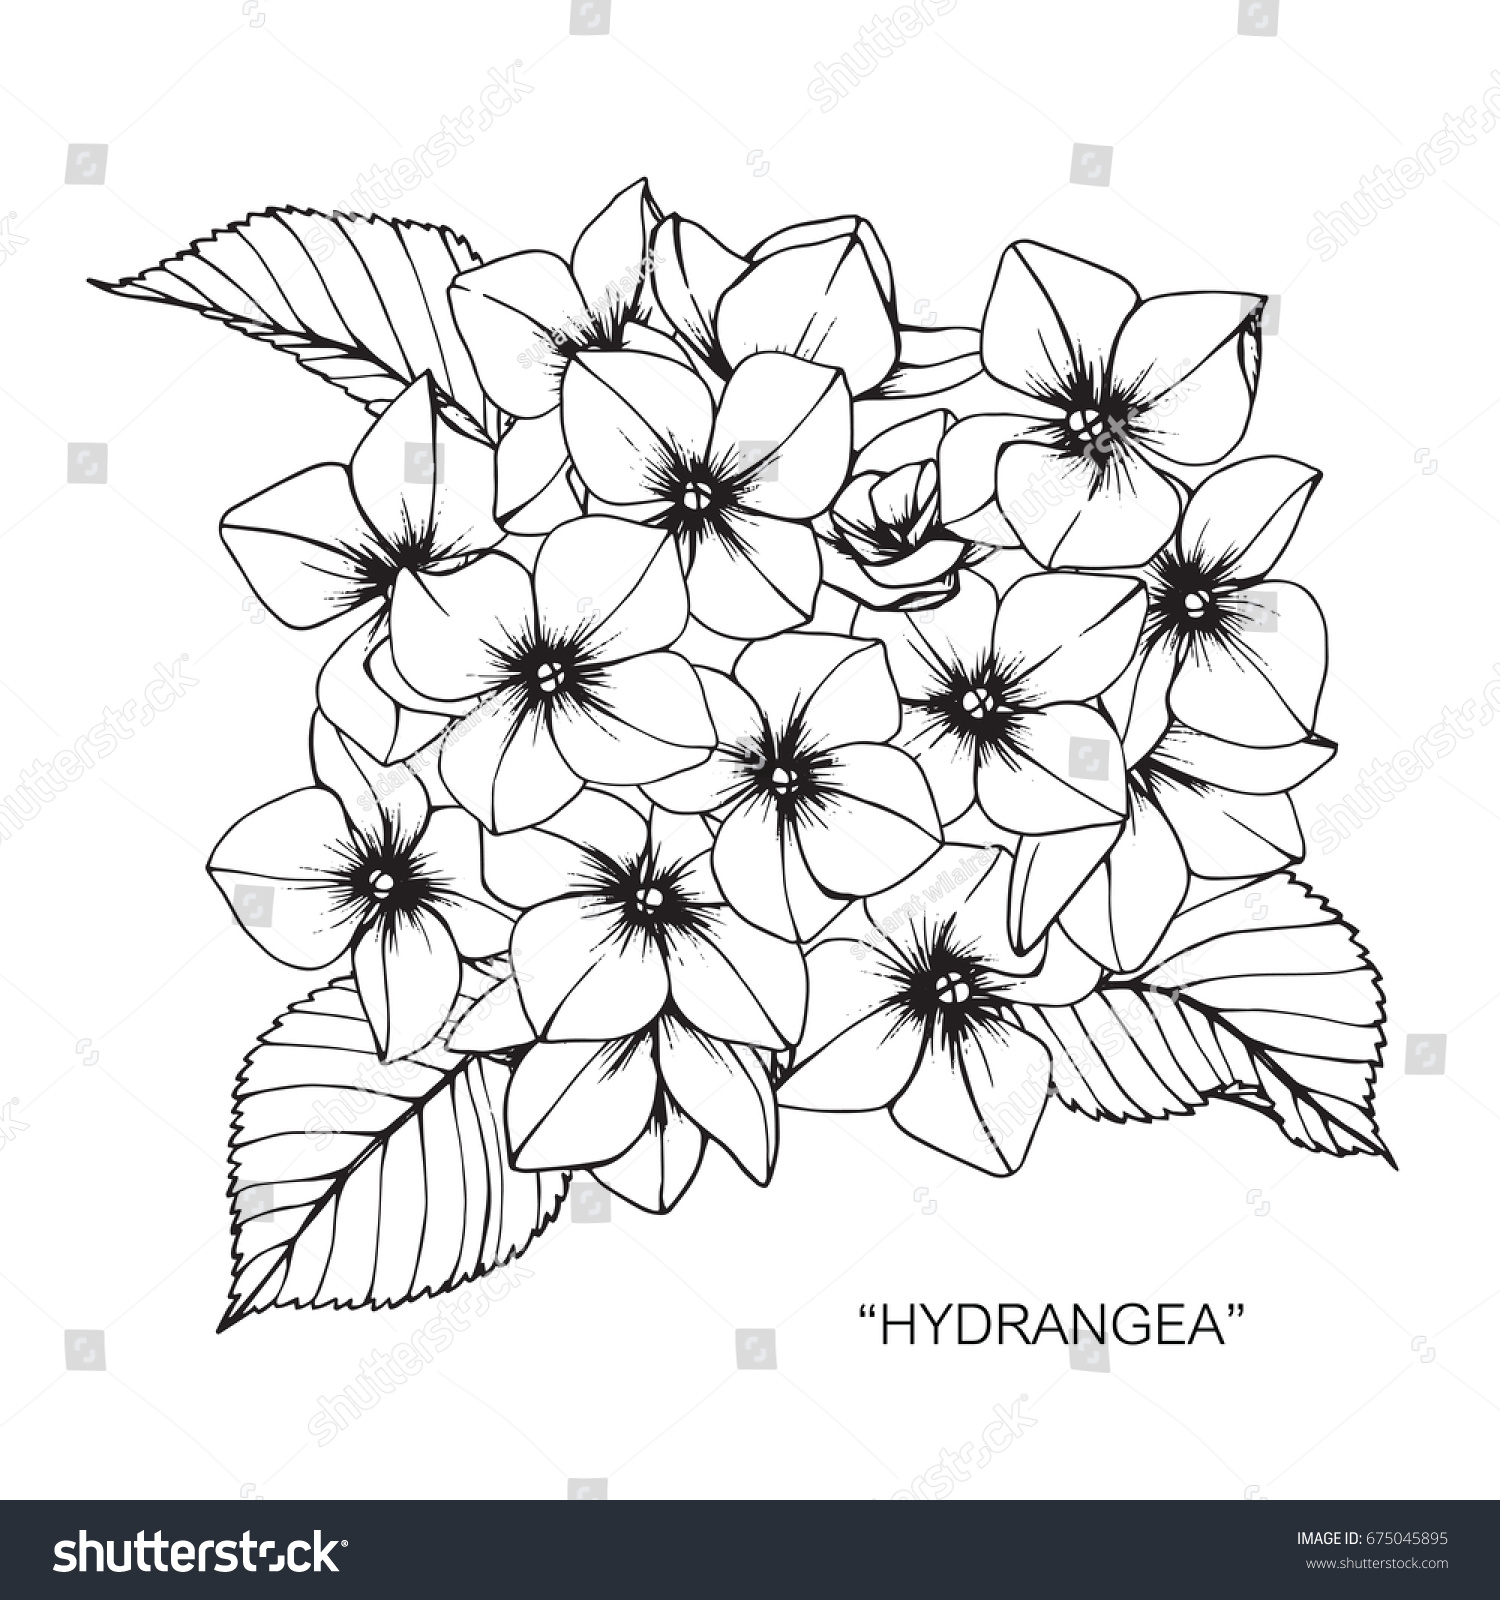 Bouquet hydrangea flowers drawing sketch lineart stock vector bouquet of hydrangea flowers drawing and sketch with line art on white backgrounds izmirmasajfo